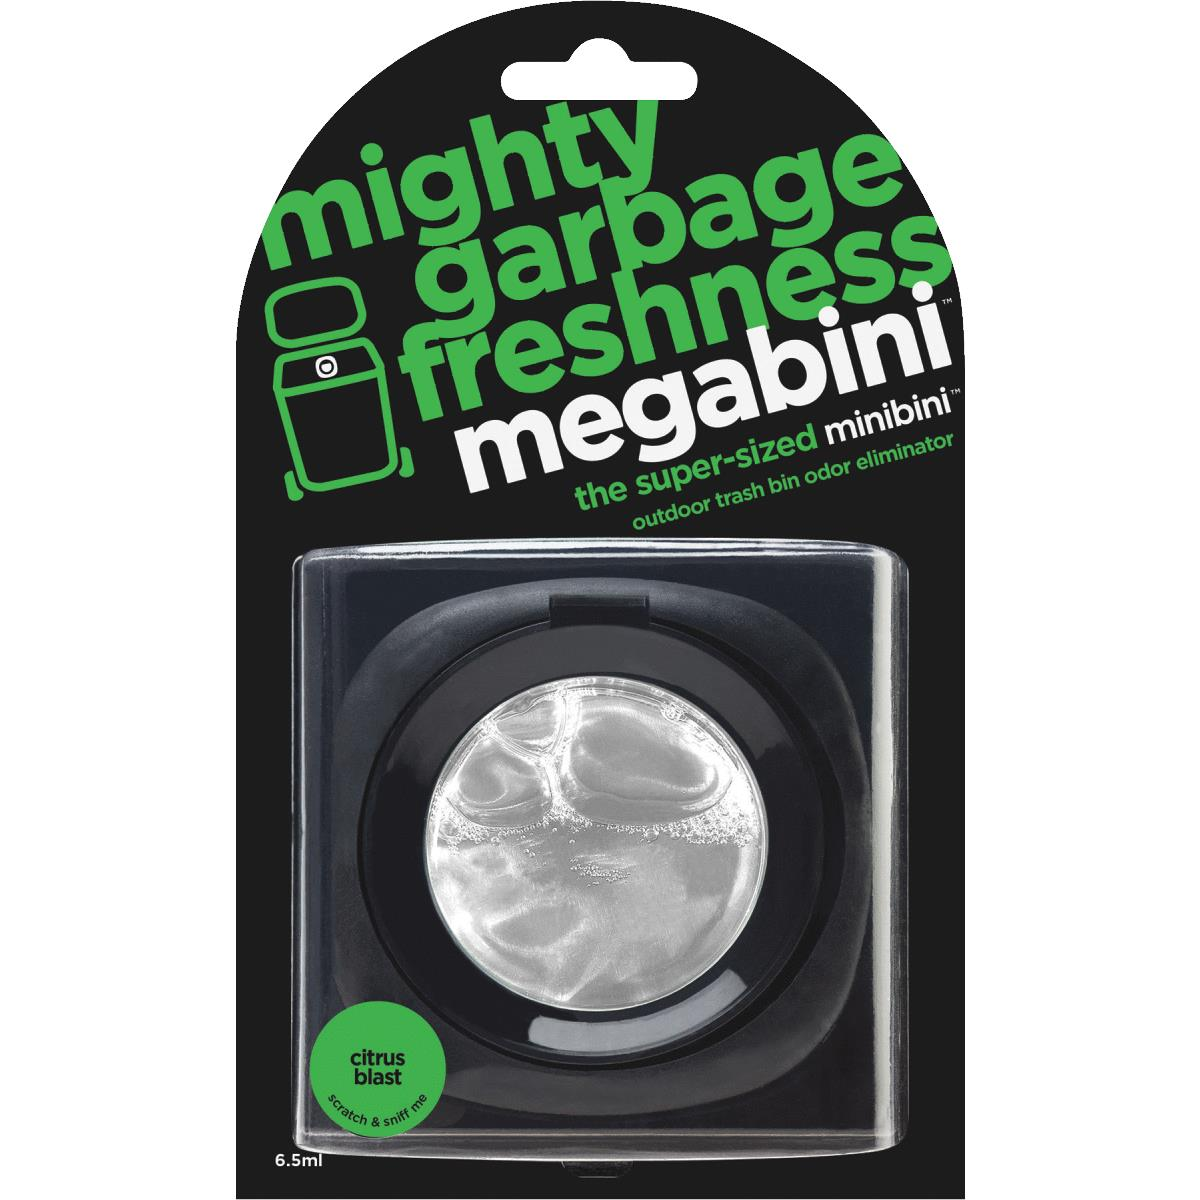 Megabini Odor Neutralizer